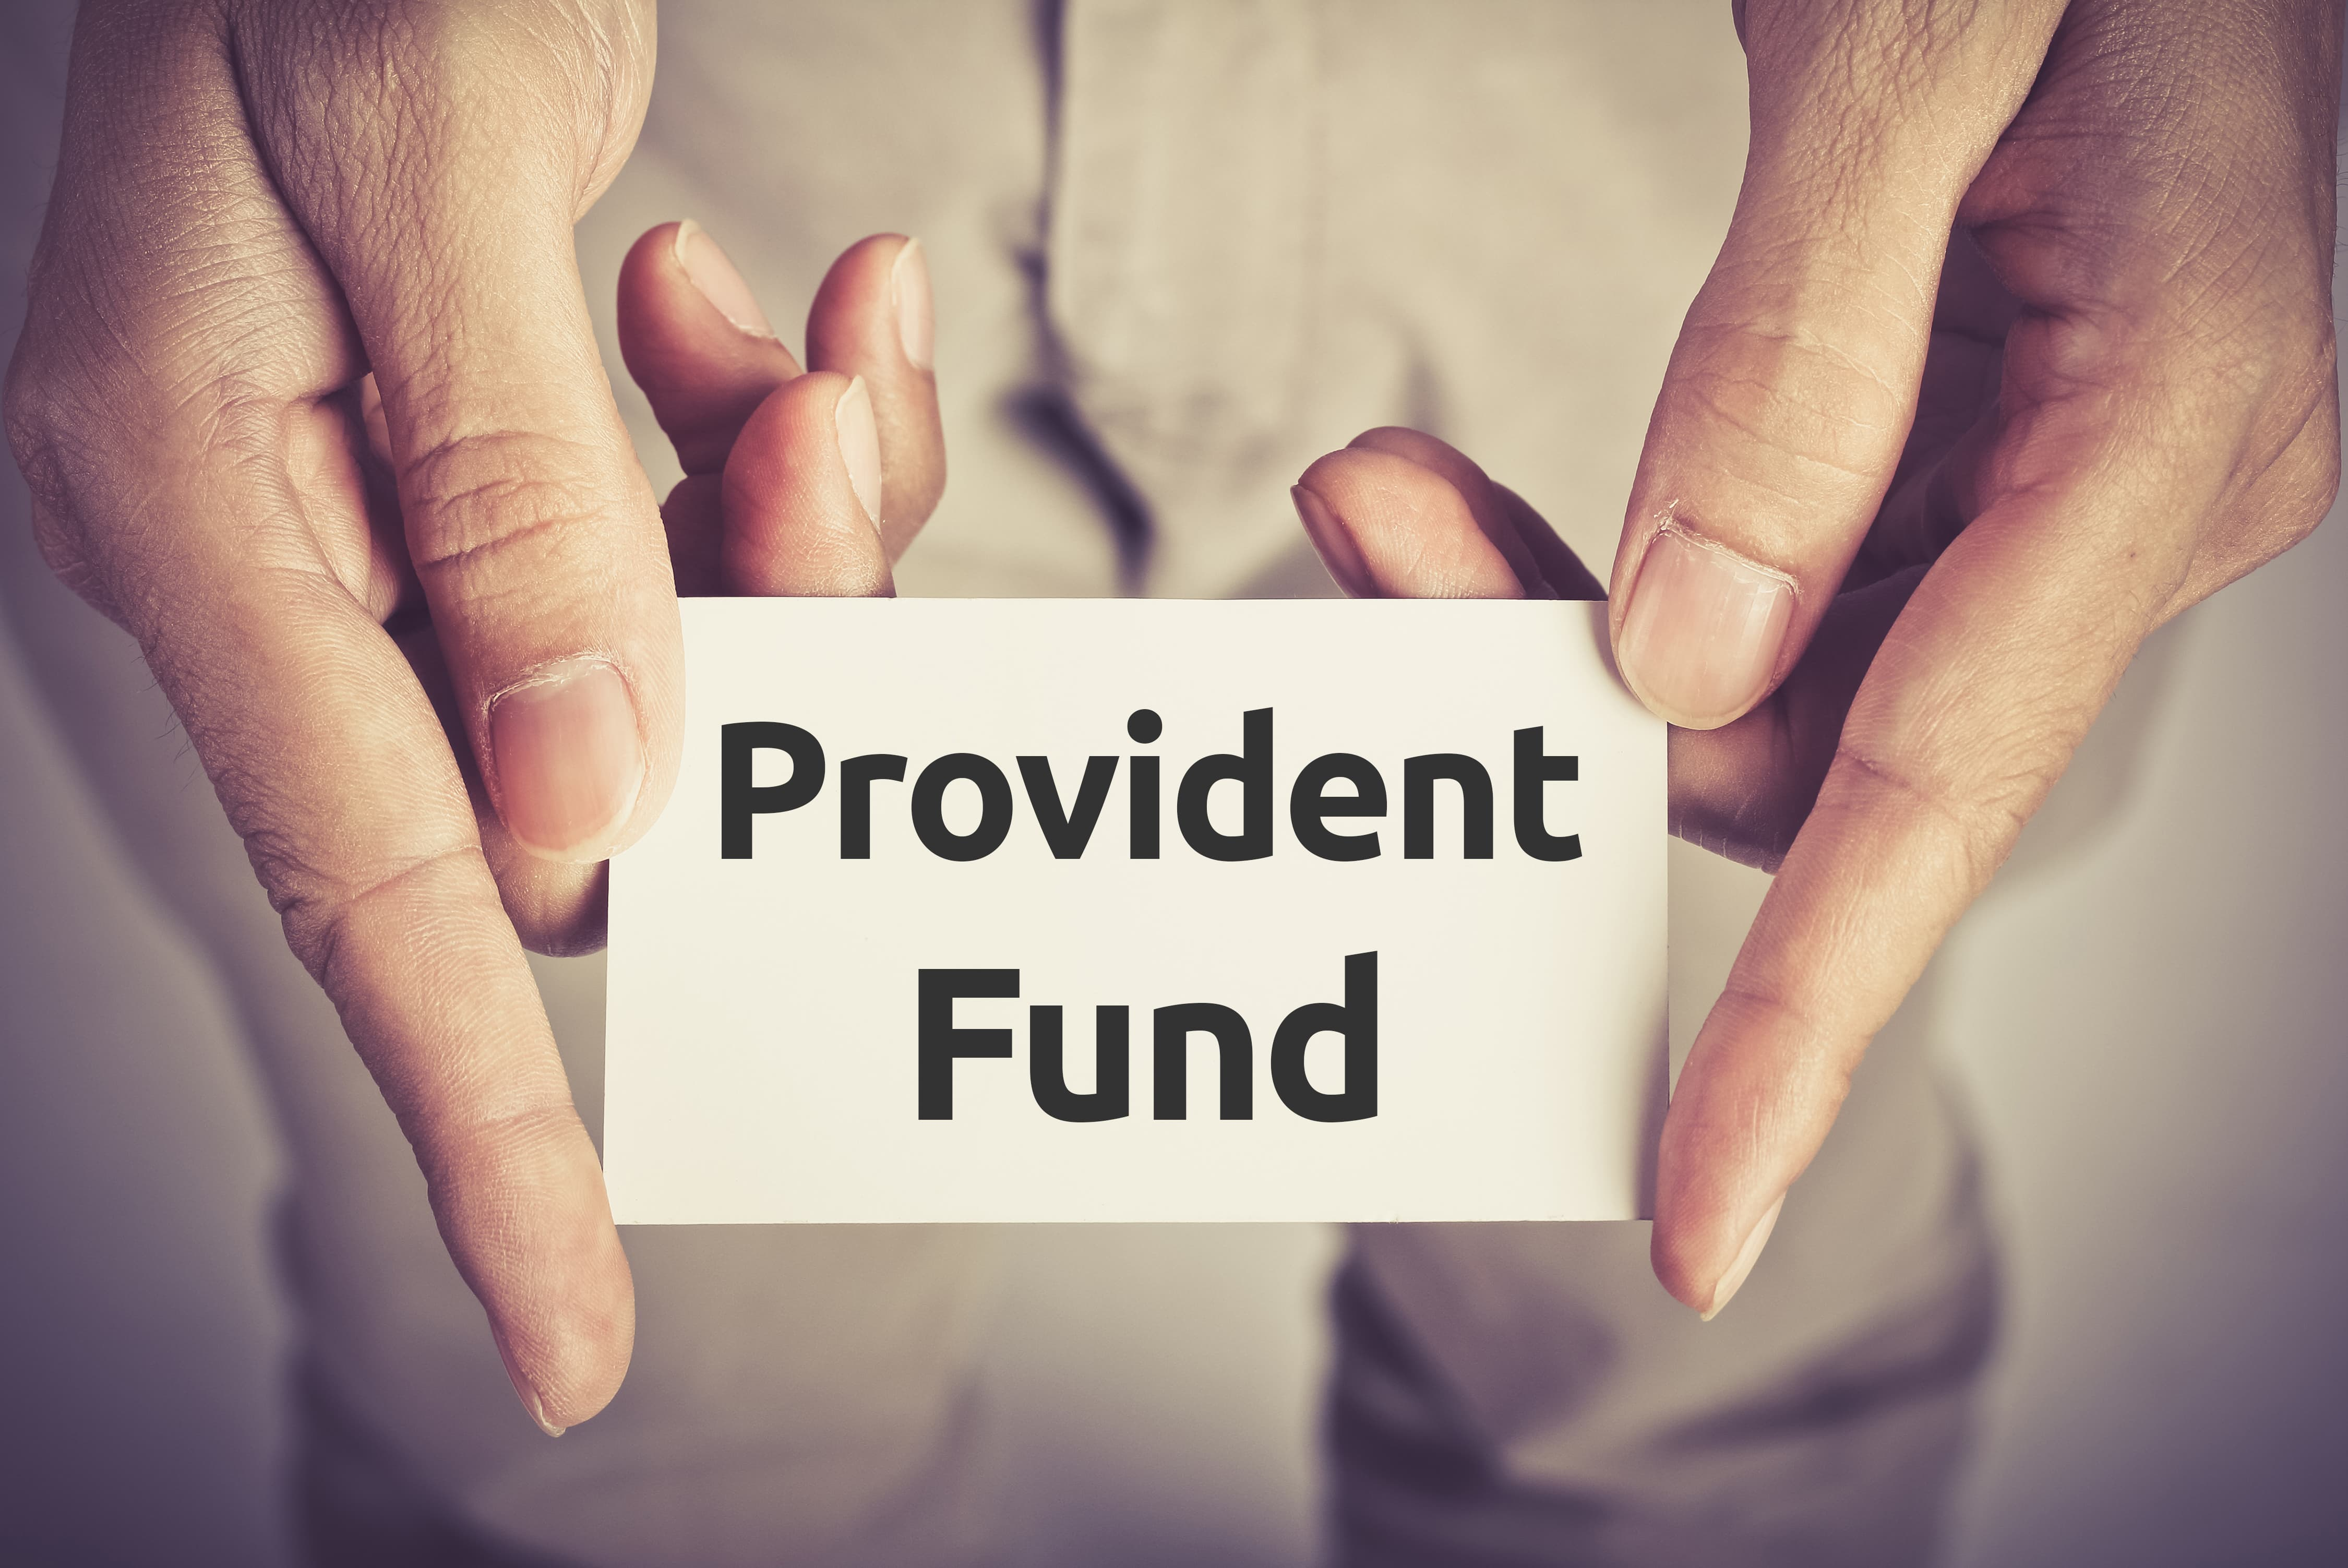 What is the Provident Fund and How is it calculated?